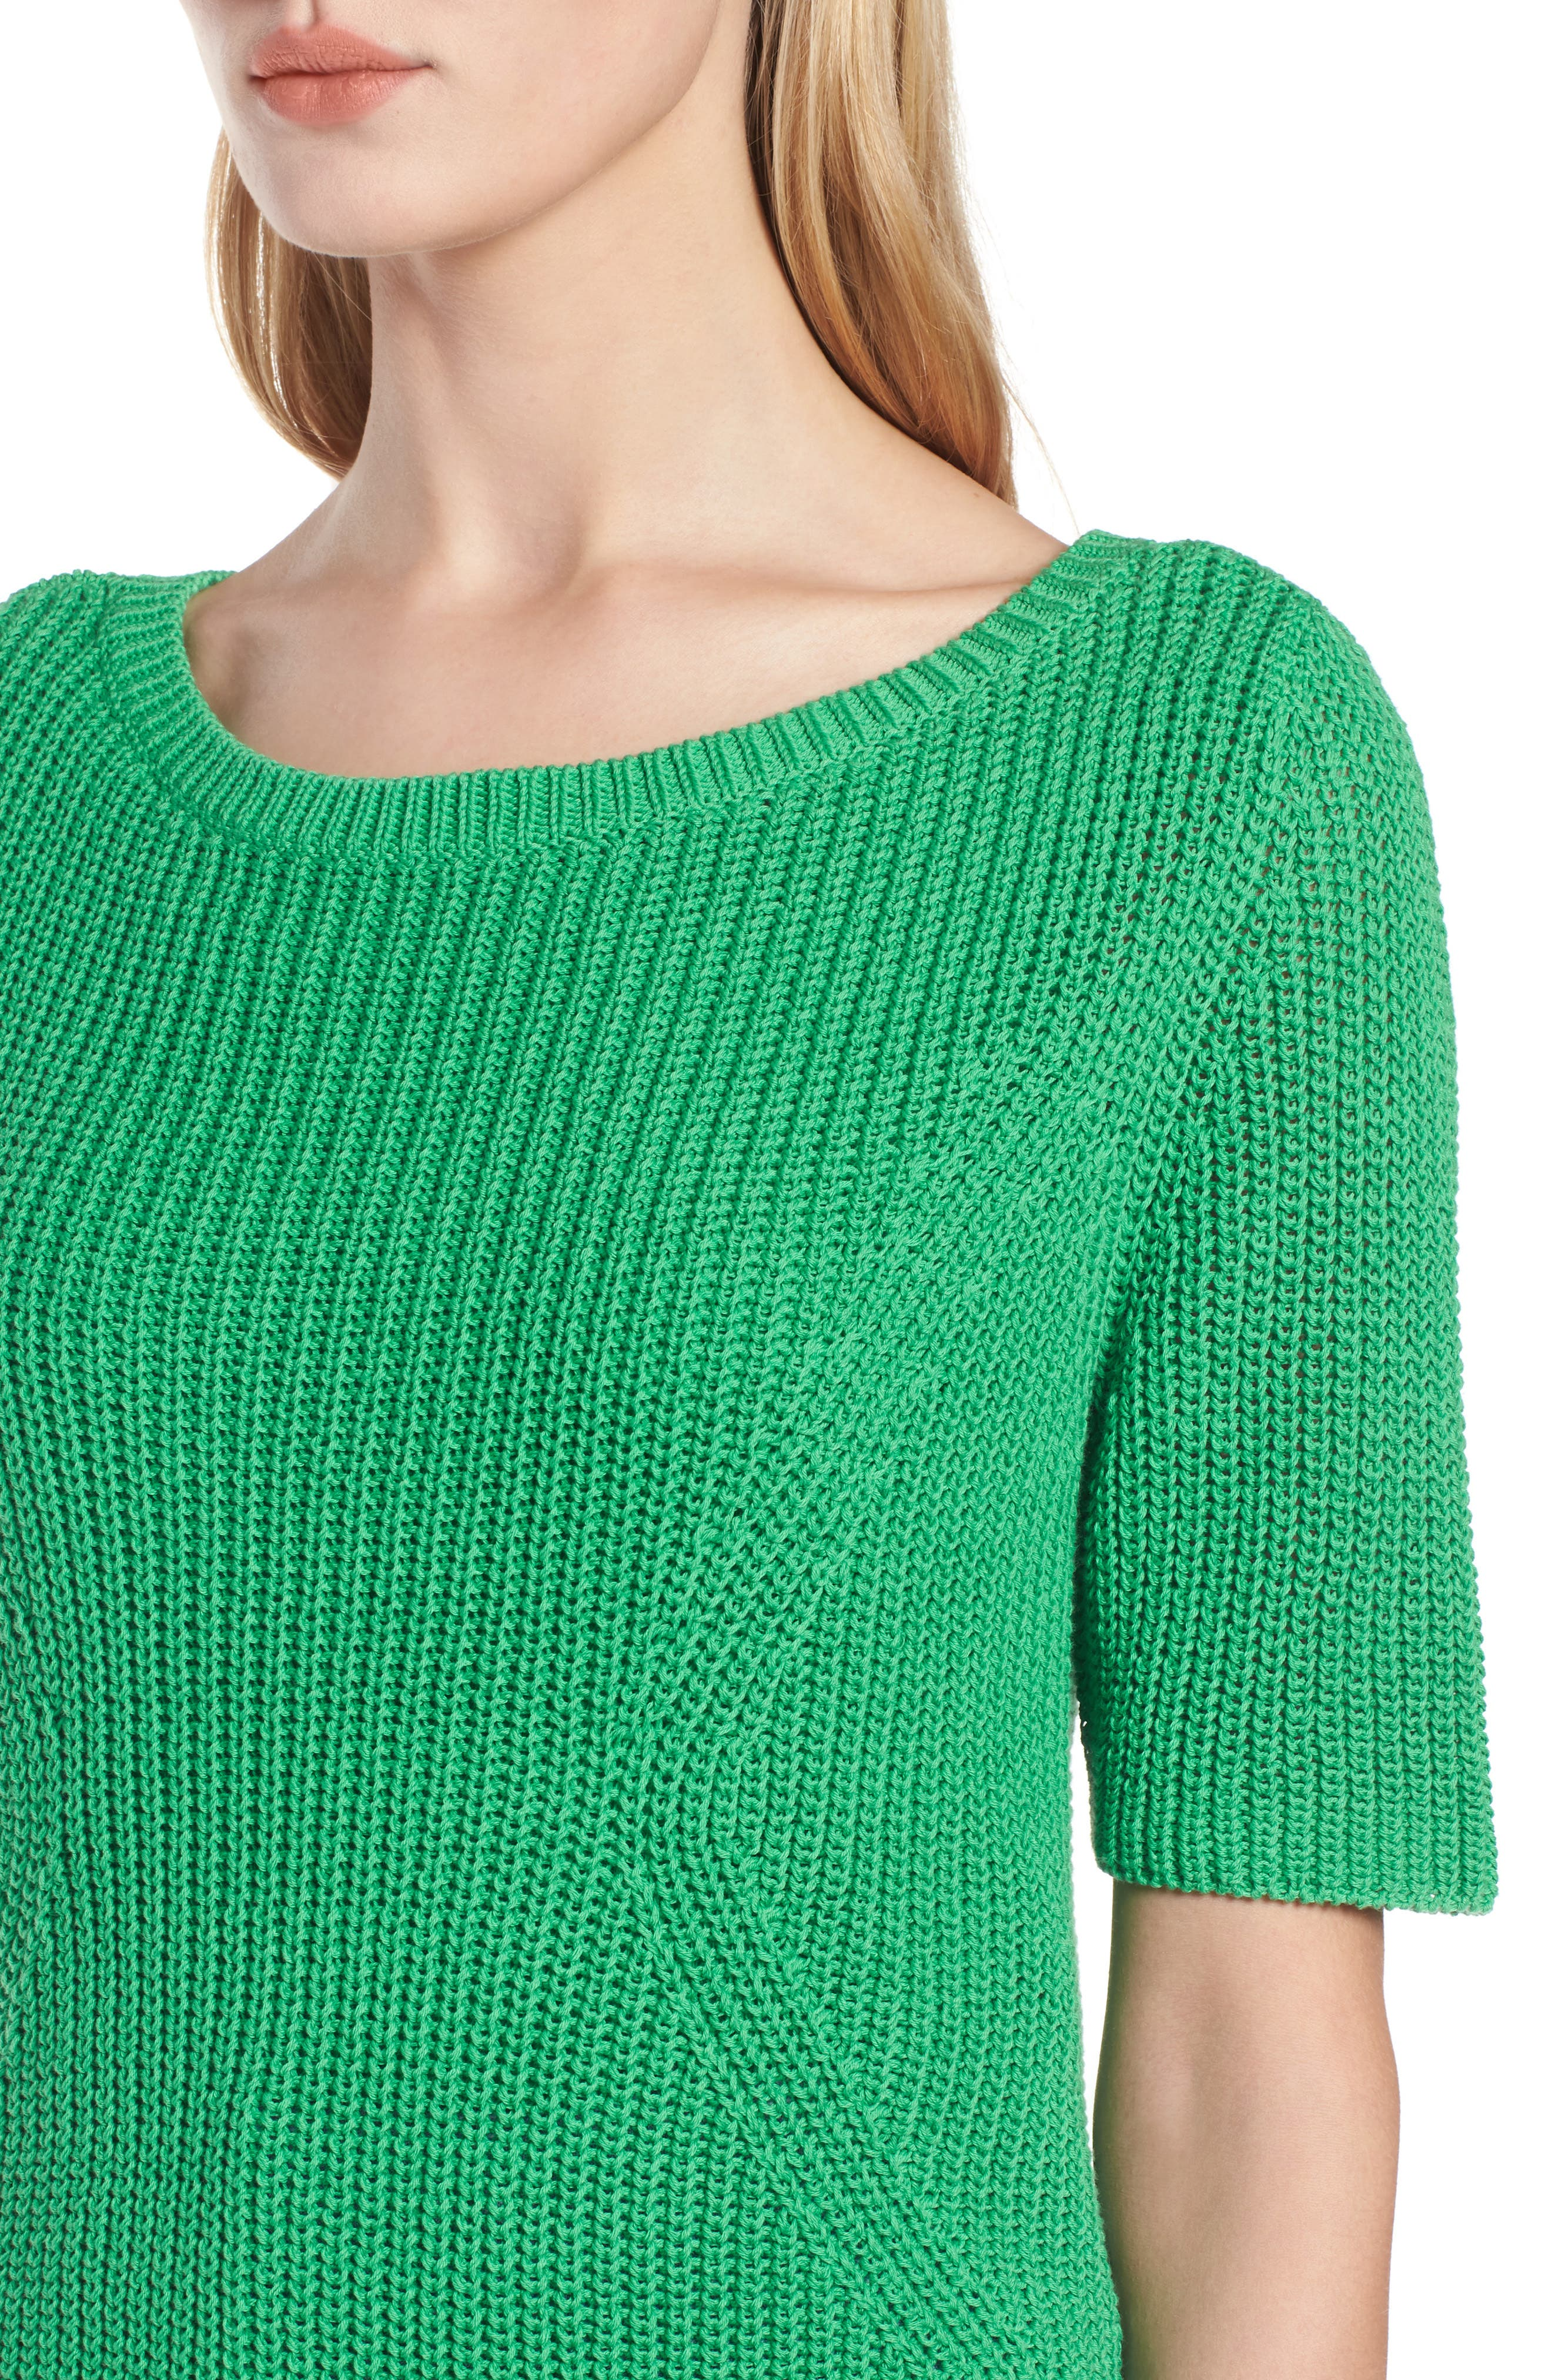 Shaker Stitch Cotton Sweater,                             Alternate thumbnail 4, color,                             330